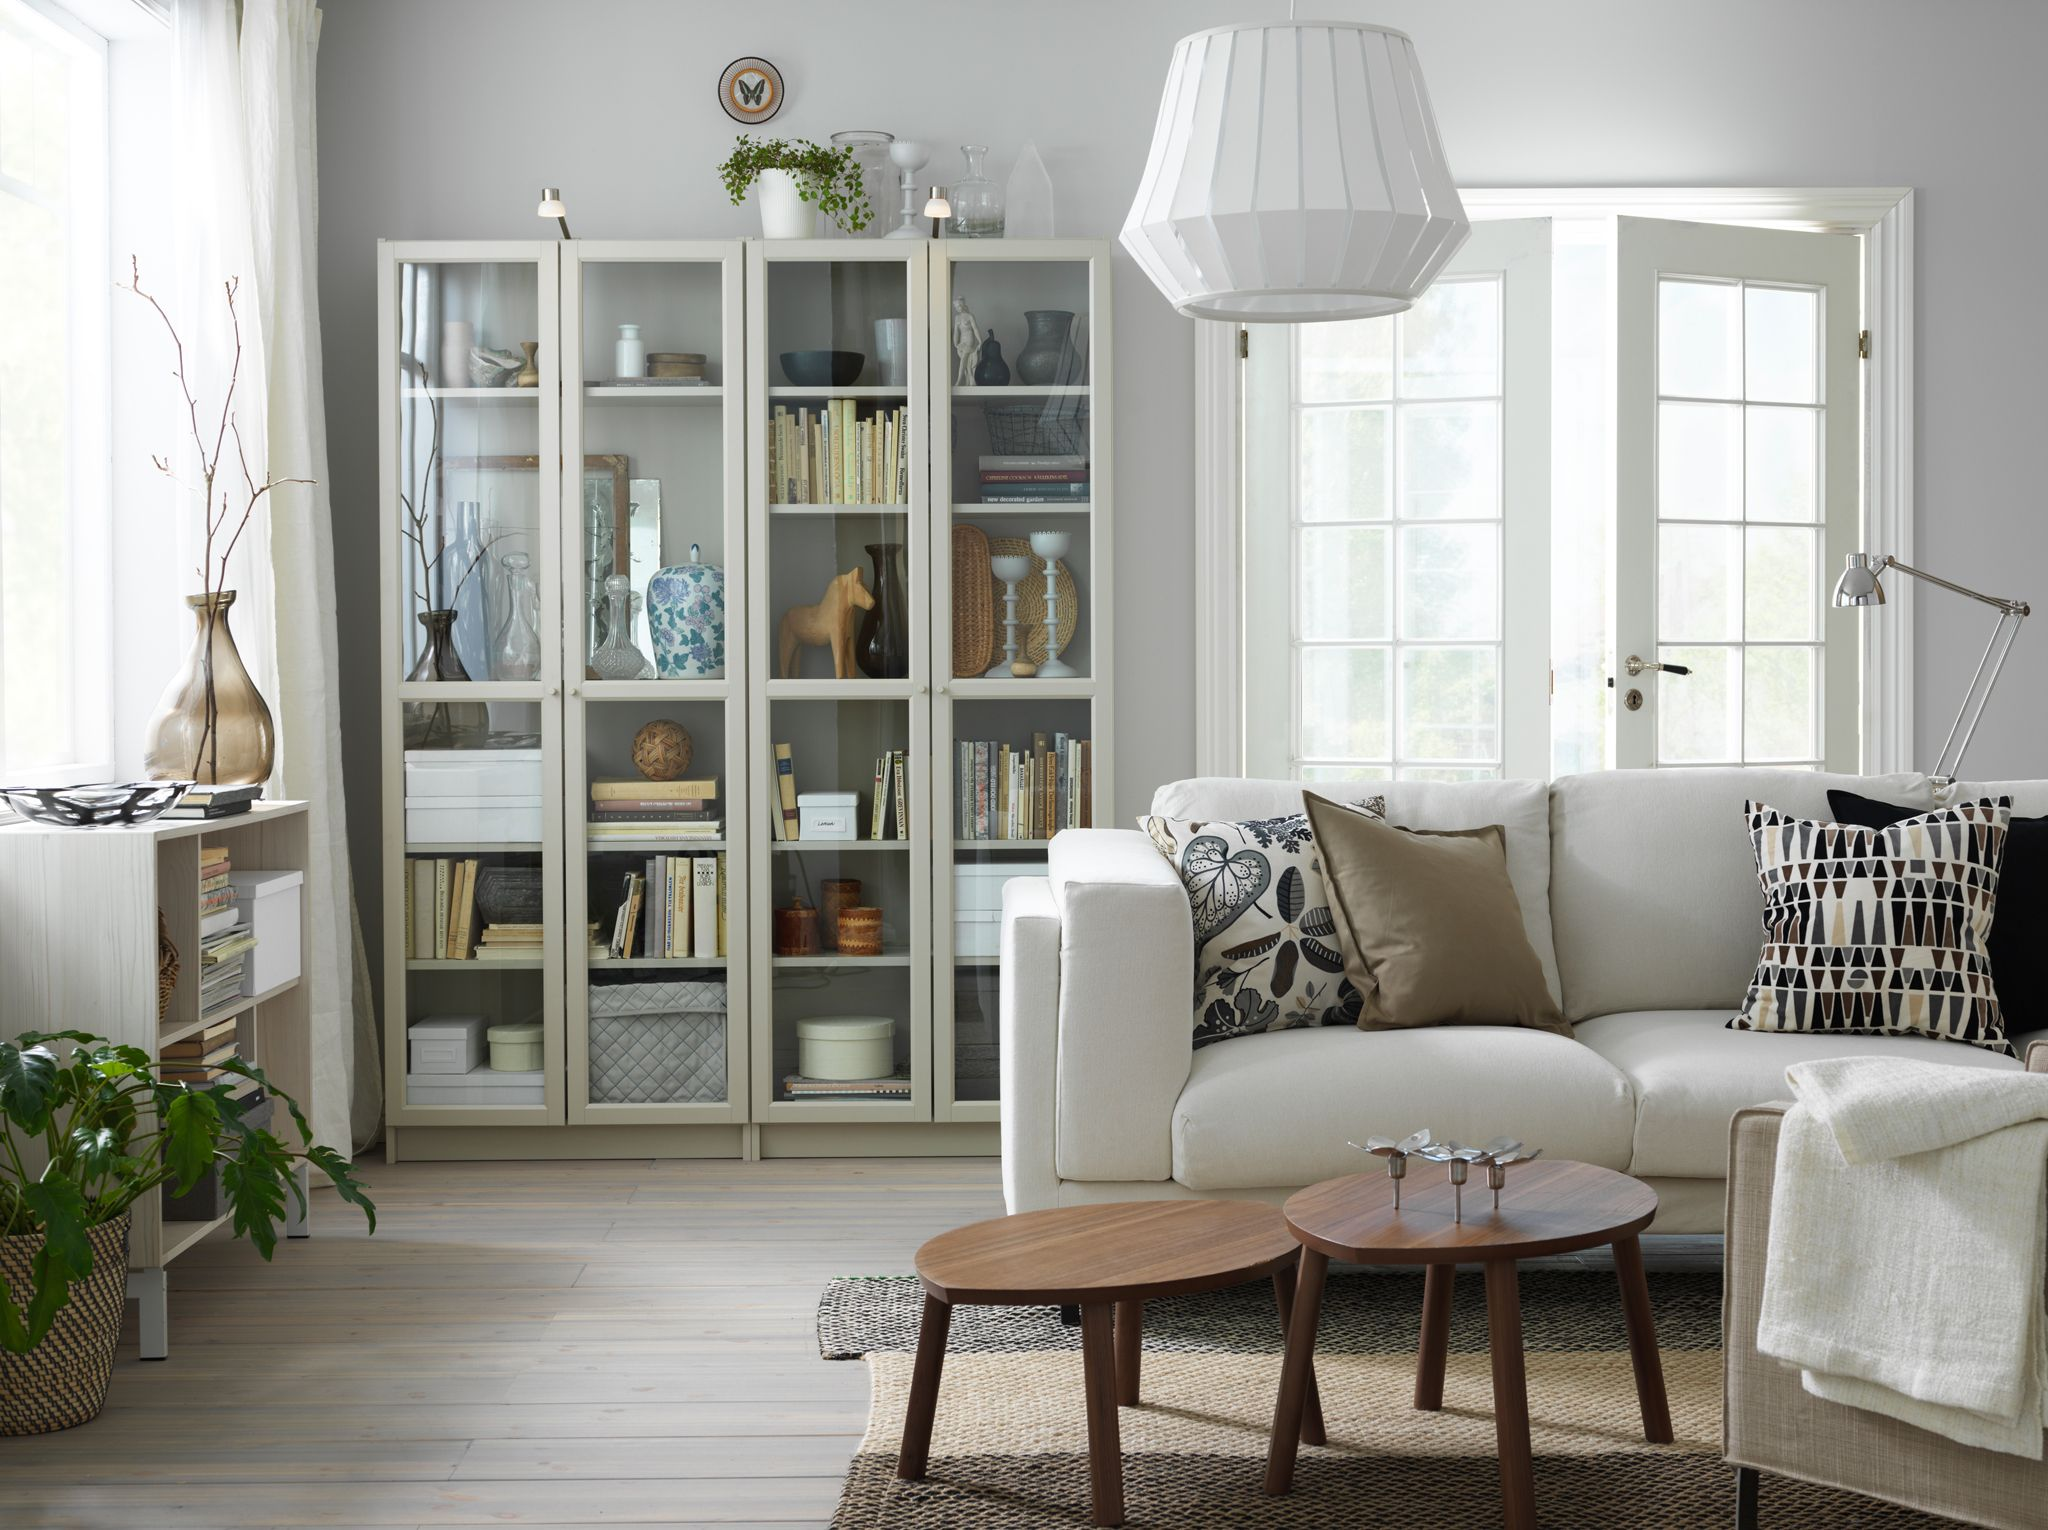 Attractive A Small Livingroom Furnished With A Light Beige Two Seat Sofa And Two Beige  Glass Door Cabinets Filled With Books, Treasures And Sentimental Items.